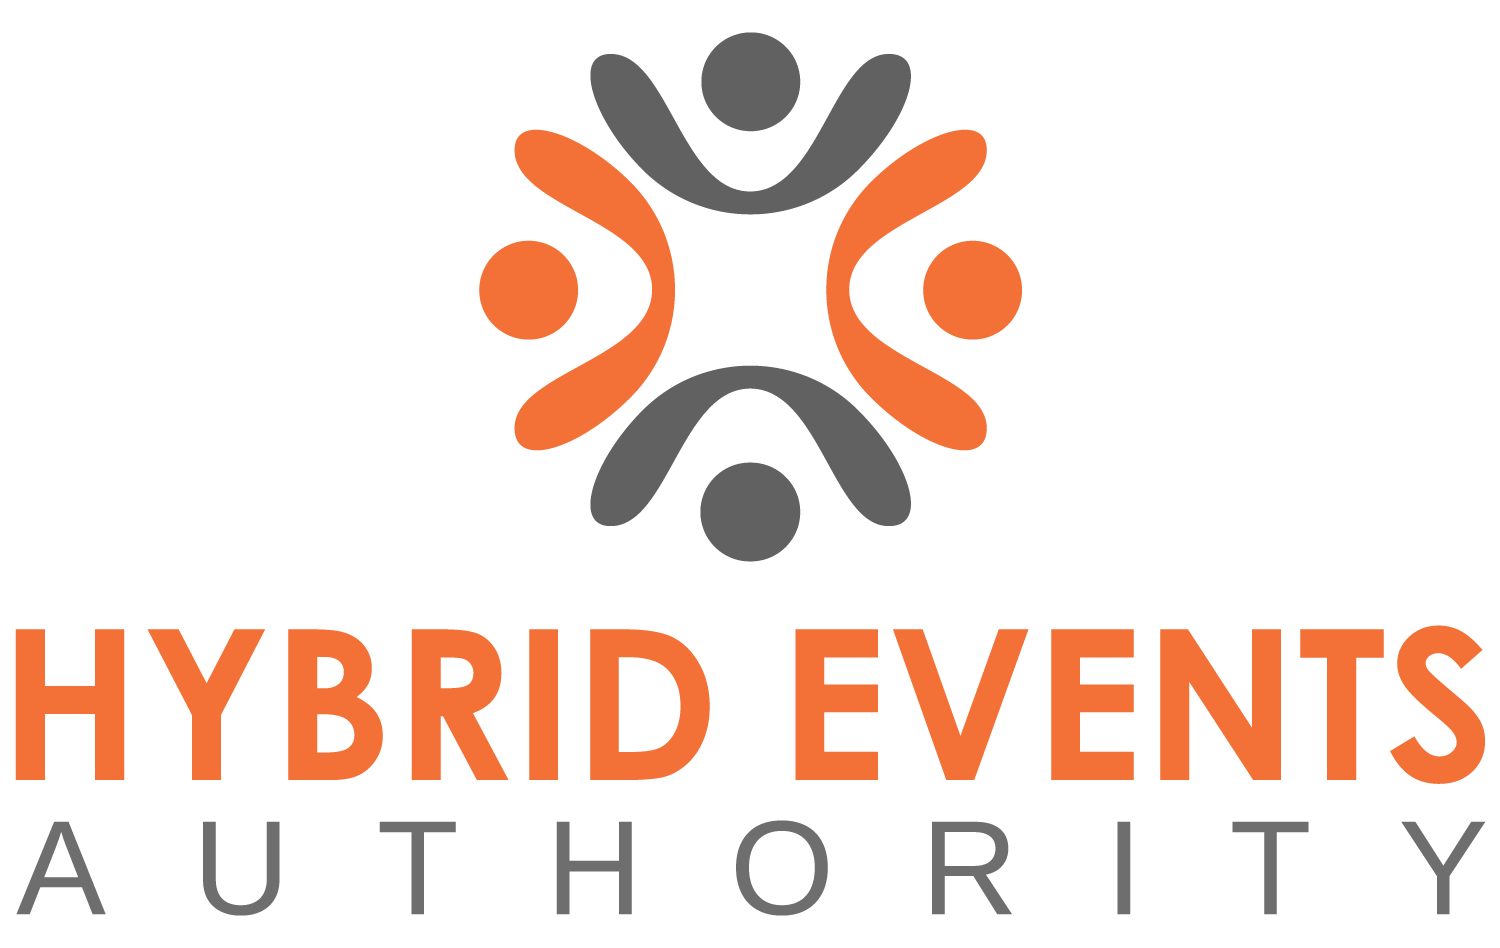 Hybrid Events Authority, LLC